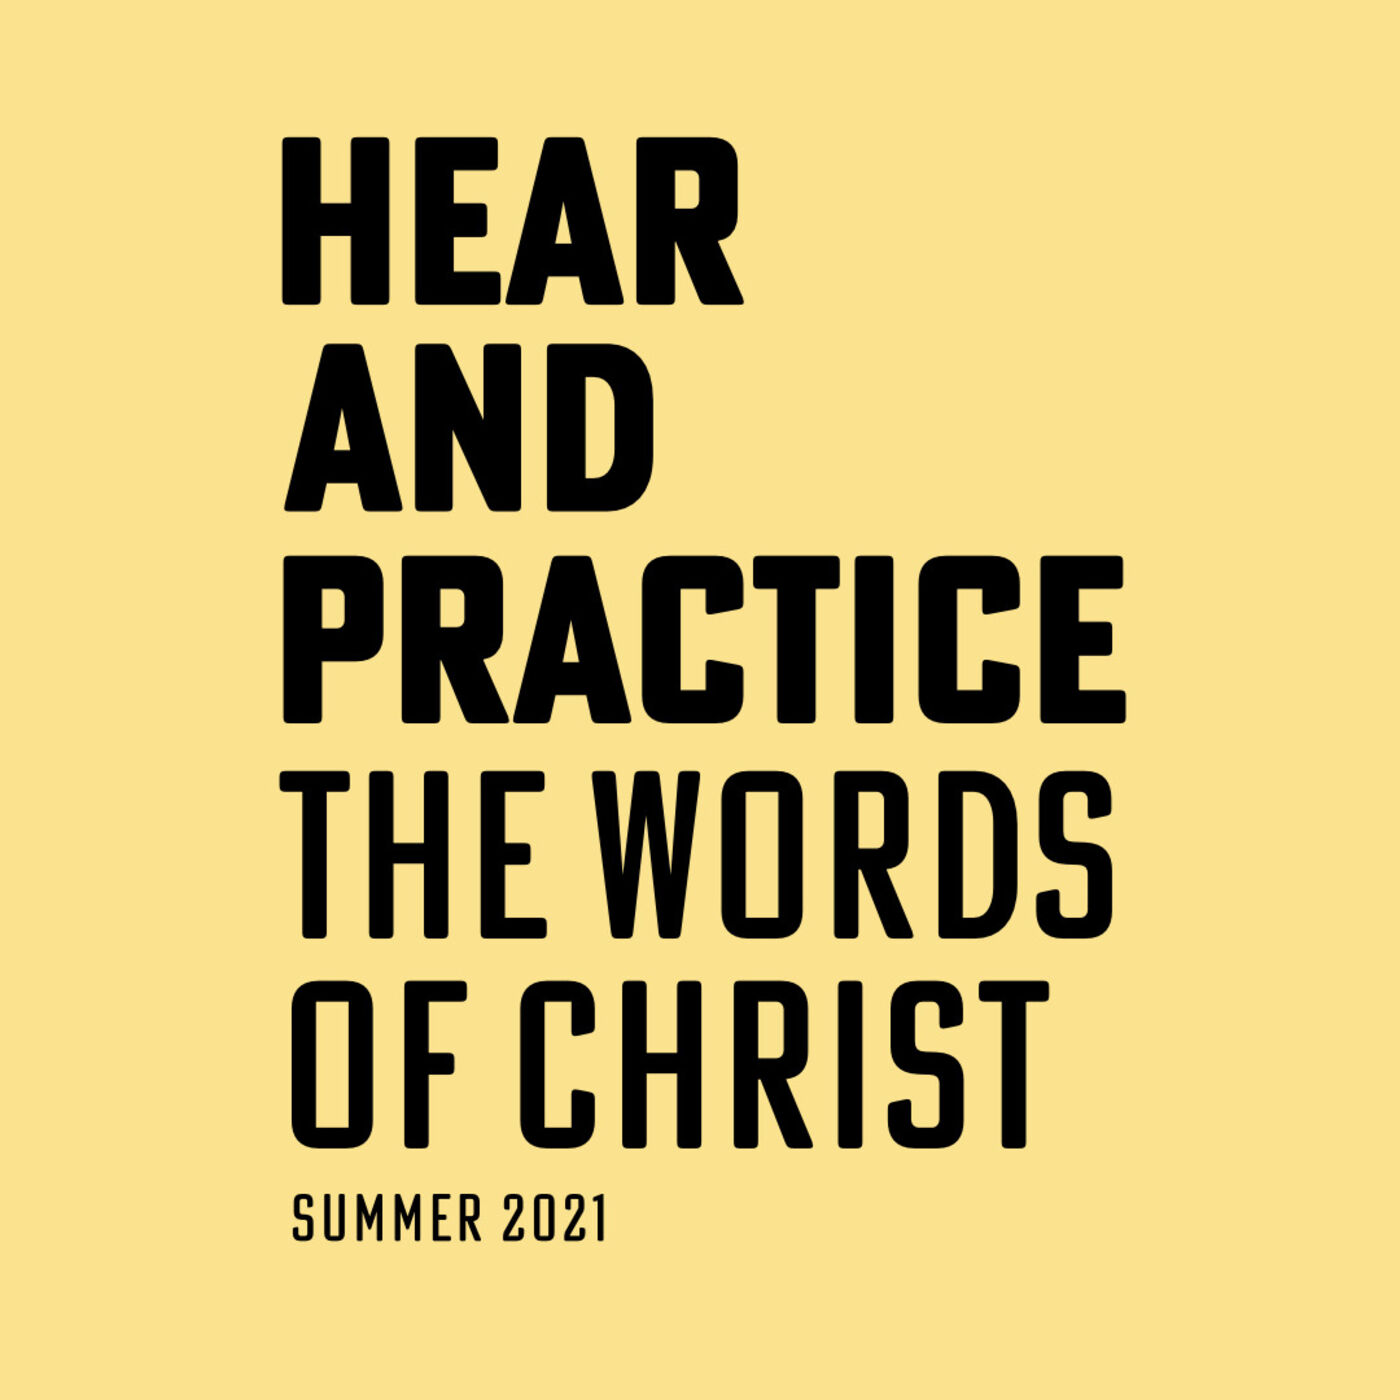 Hear and Practice: The Words of Christ | Matthew 22:15-22 » August 15, 2021